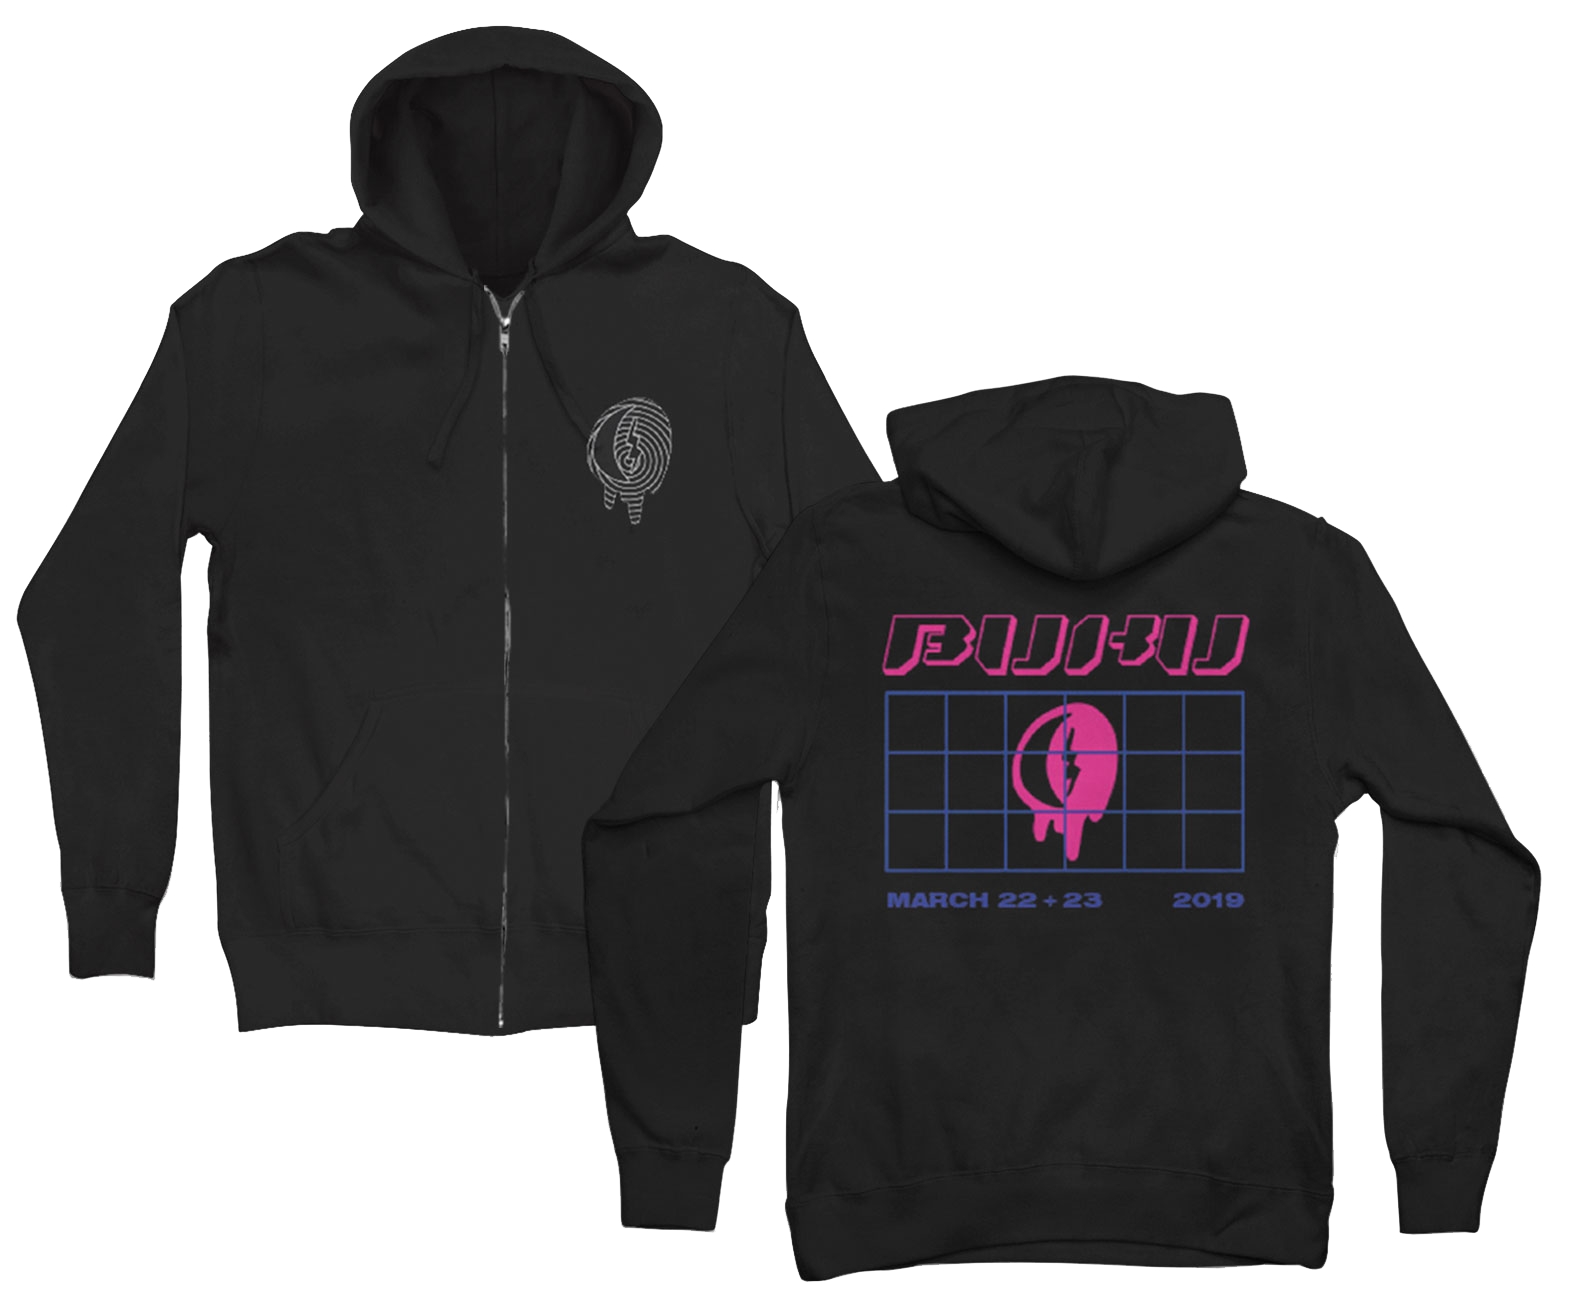 BLACK GRID ZIP UP HOODIE